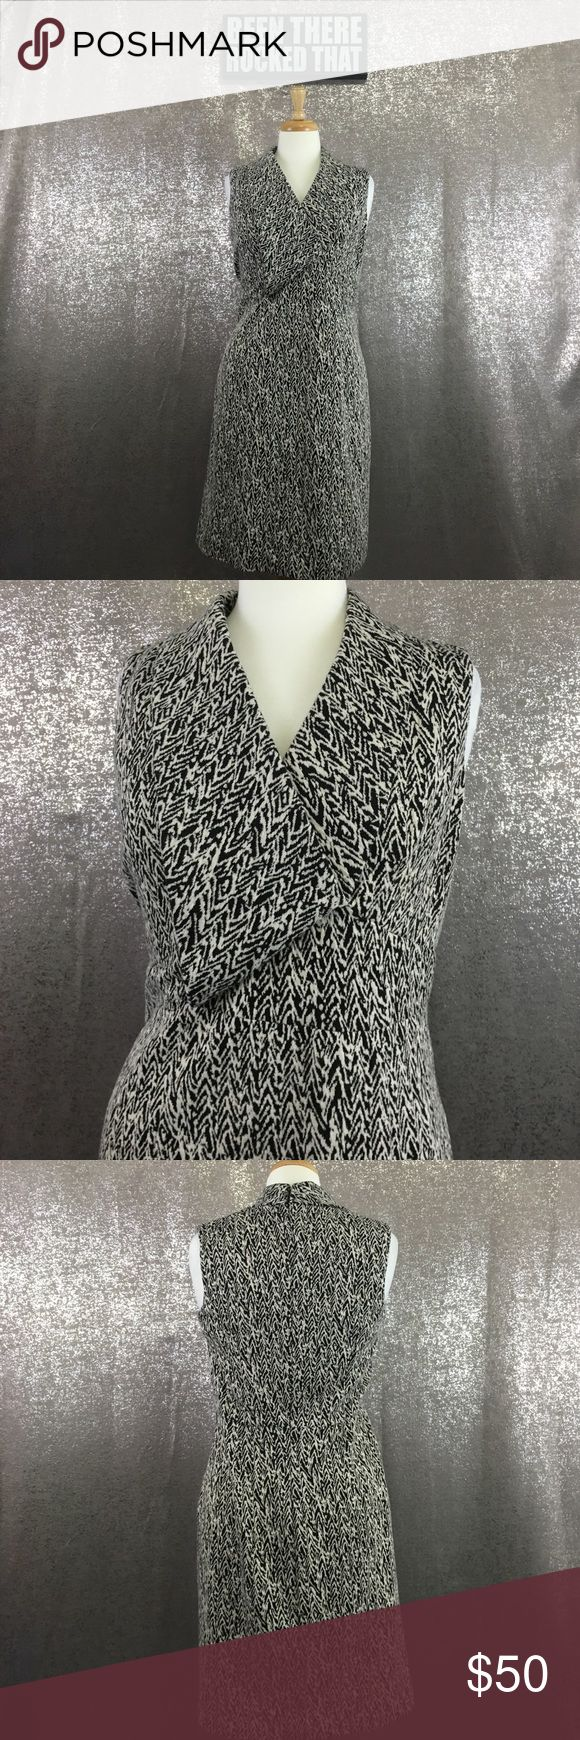 Calvin Klein abstract knot wear to work dress In excellent